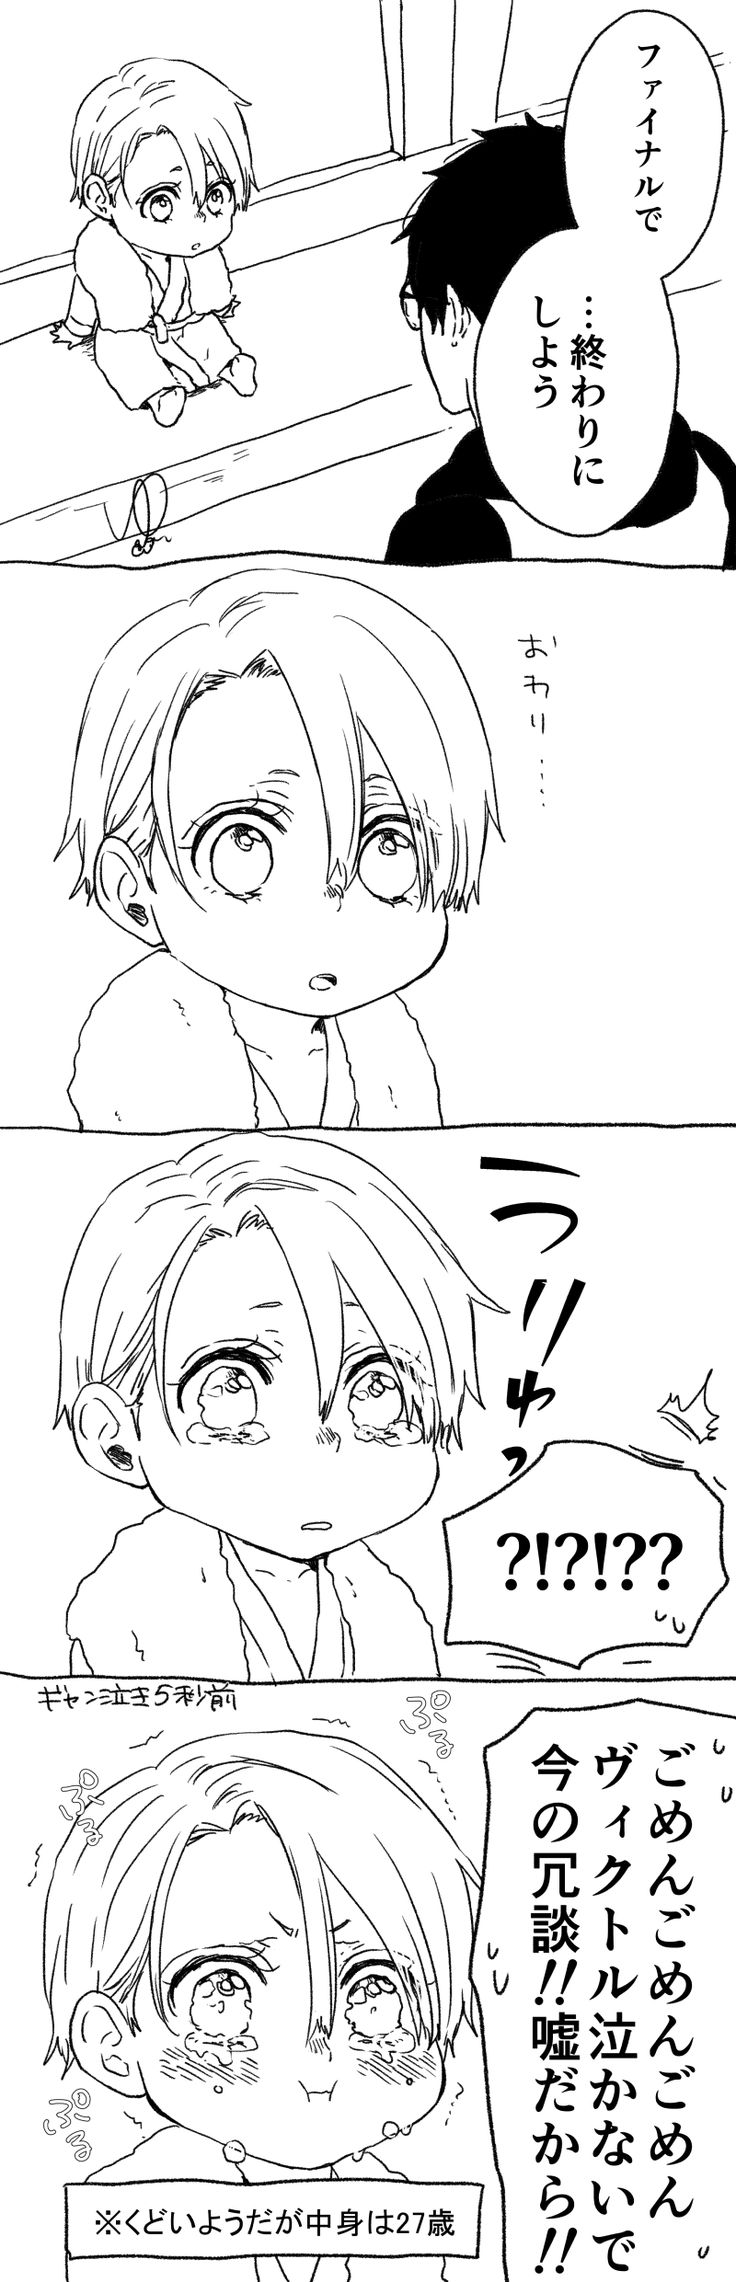 Don't make baby Vitya cry Yuri!😢😢😢😢😢😙😙😙😙😙